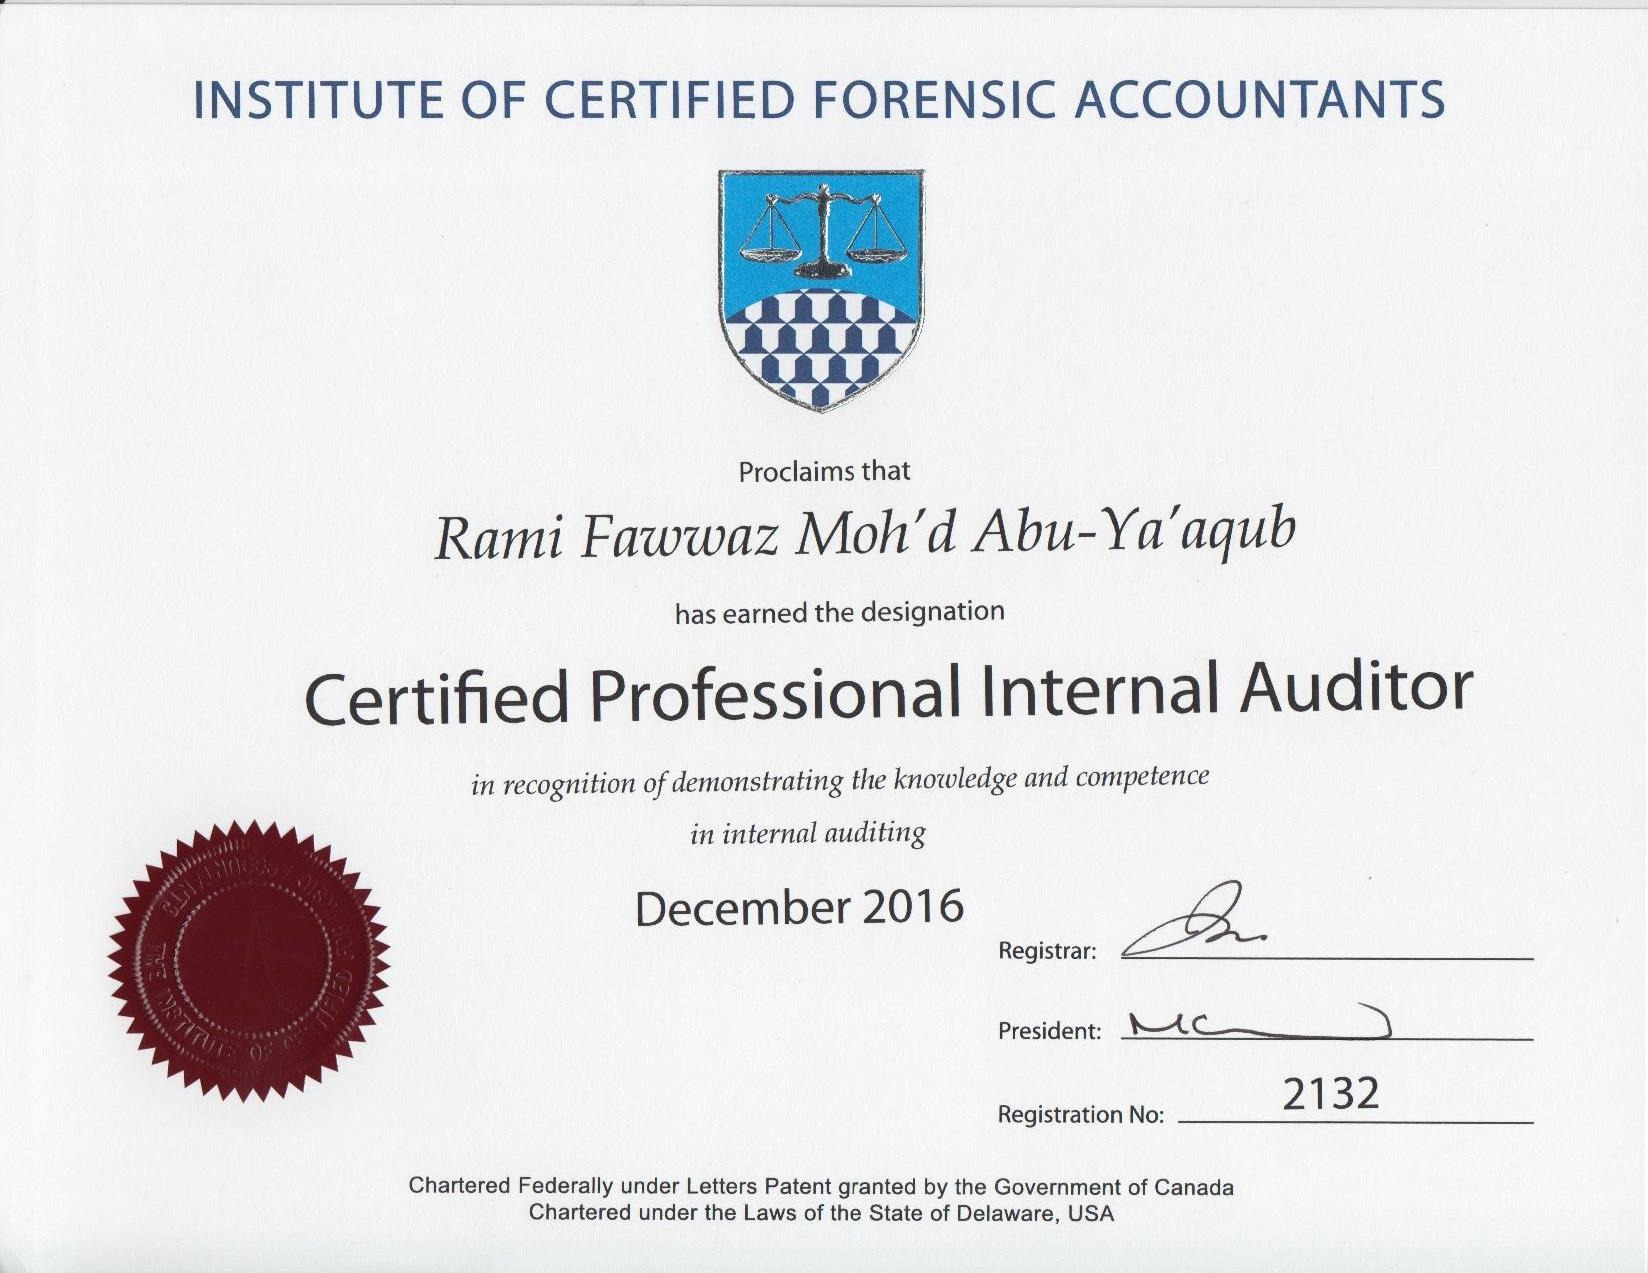 certified professional internal auditor cpia 1betcityfo Image collections